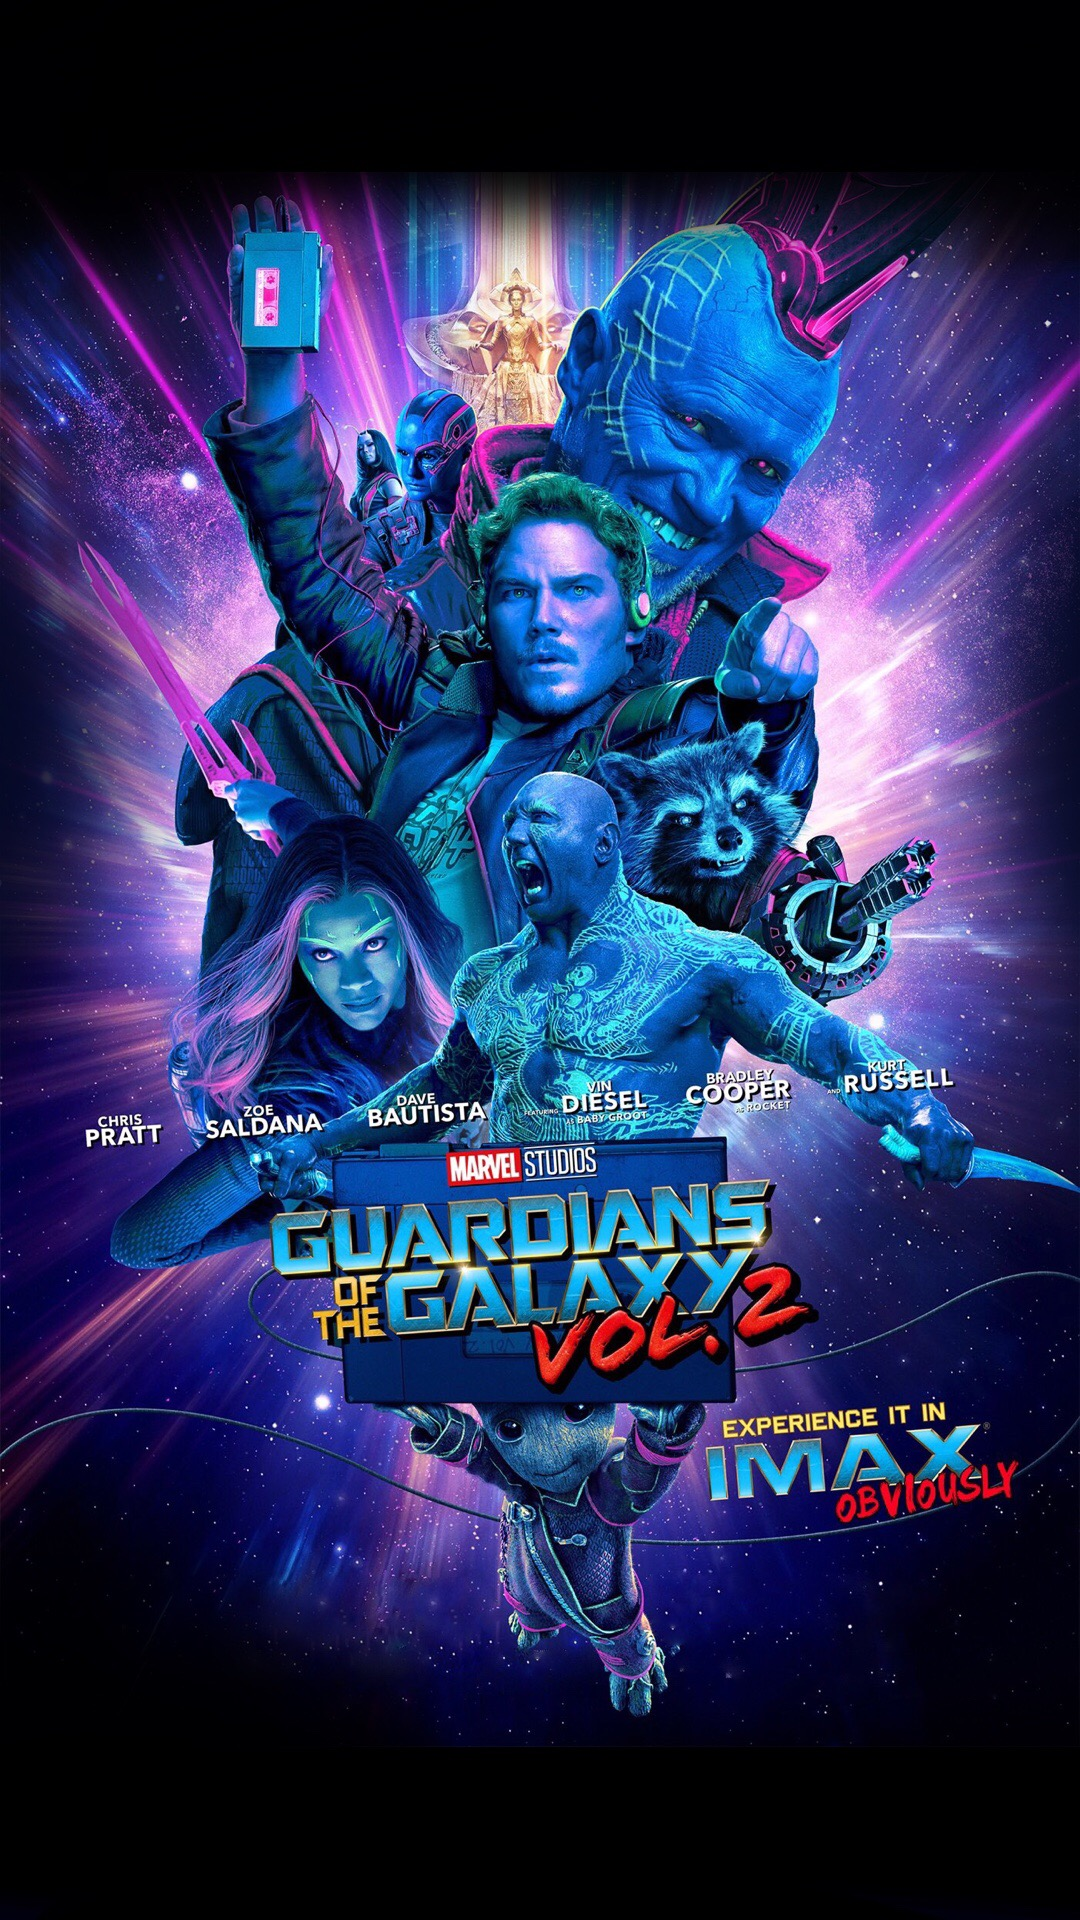 Guardians of the Galaxy Vol 2 wallpapers 1080x1920